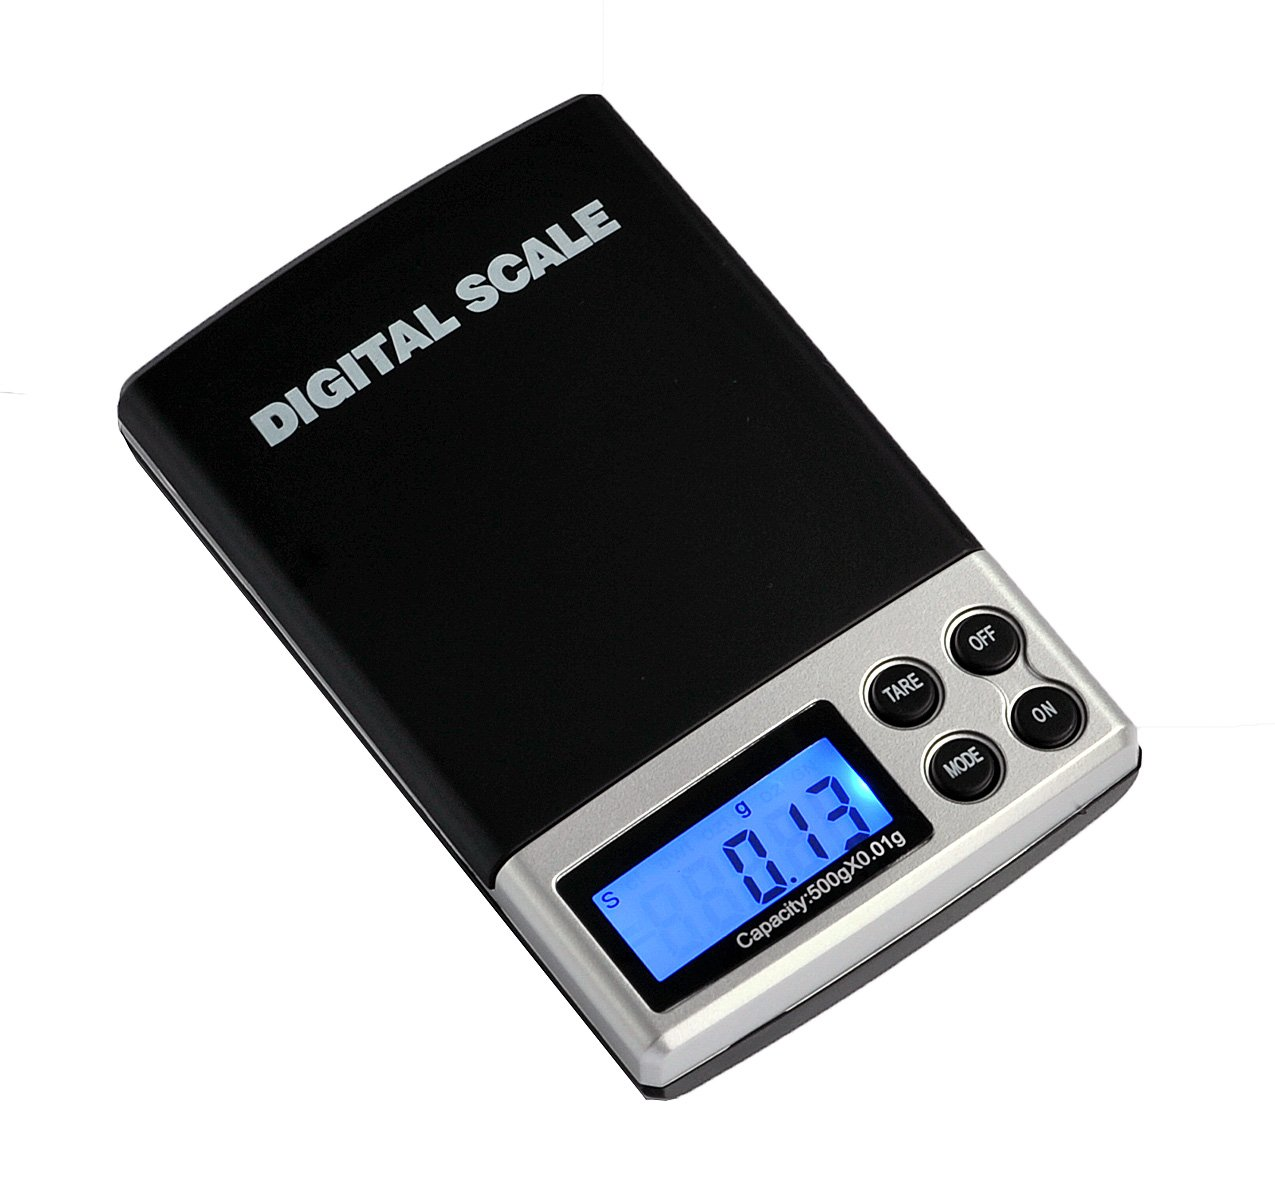 Pocket Scale, 2000 g by 0.1 g or 4.4 lb by 0.01 oz Linghan DS-01